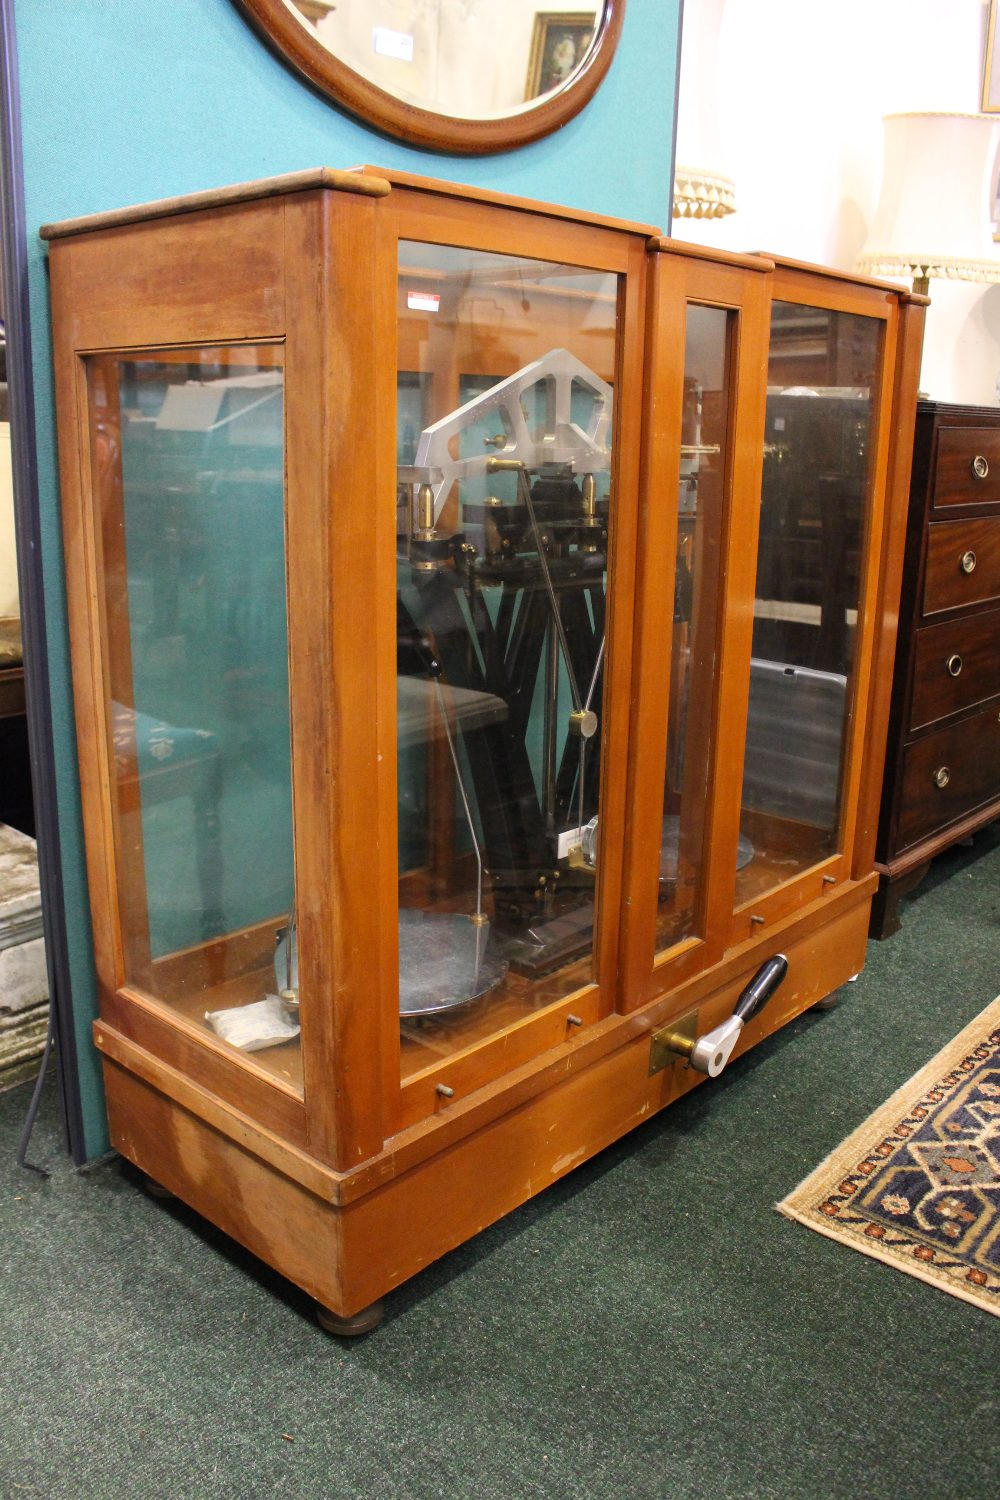 Lot 410 - AVERY LARGE CASED SET OF STANTON INSTRUMENTS LTD BEAM SCALES, cabinet of wood and glass, two sliding